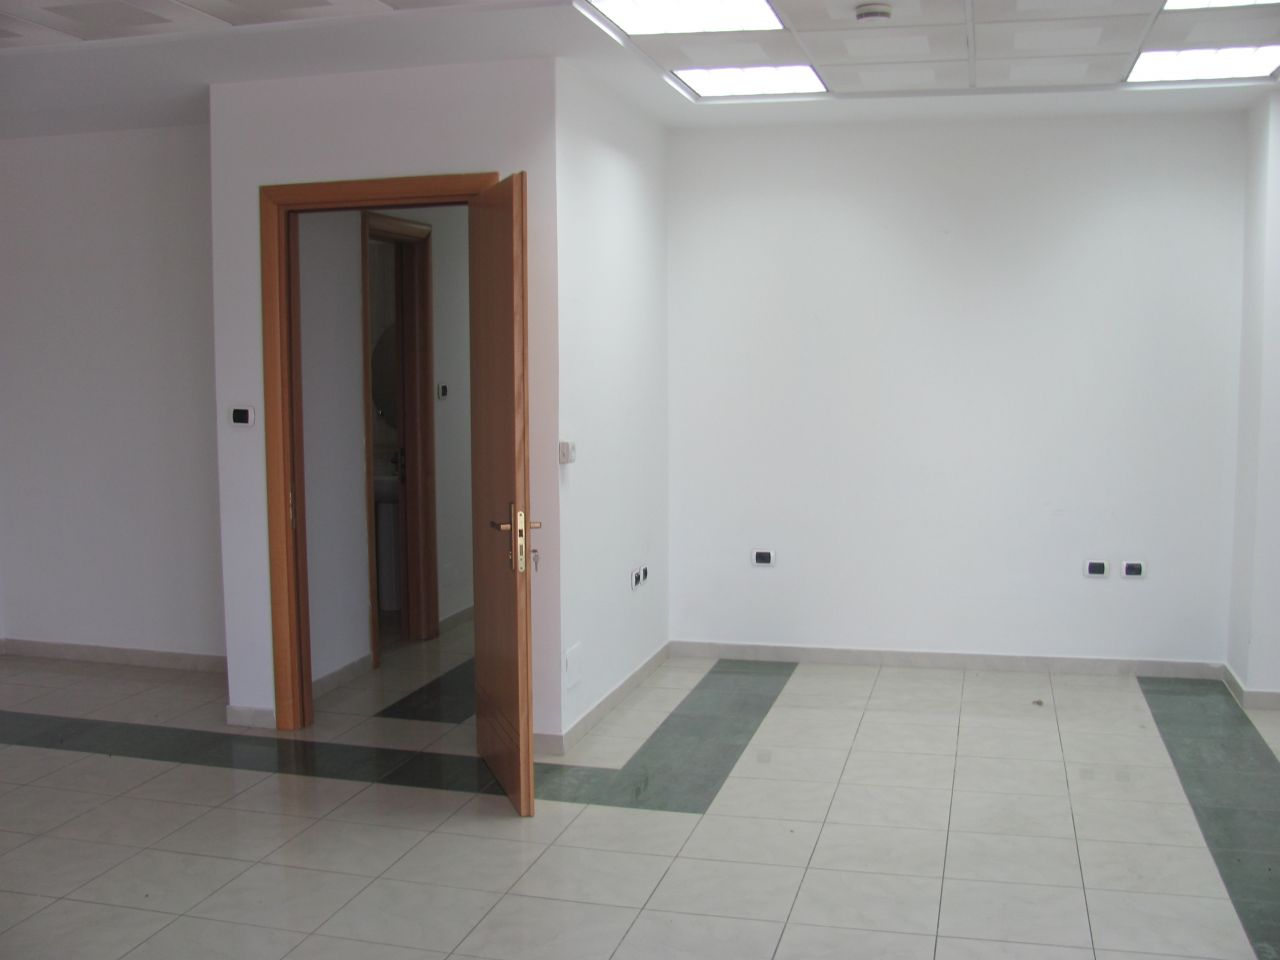 Rent an office in Tirana, Albania in the Twin Towers